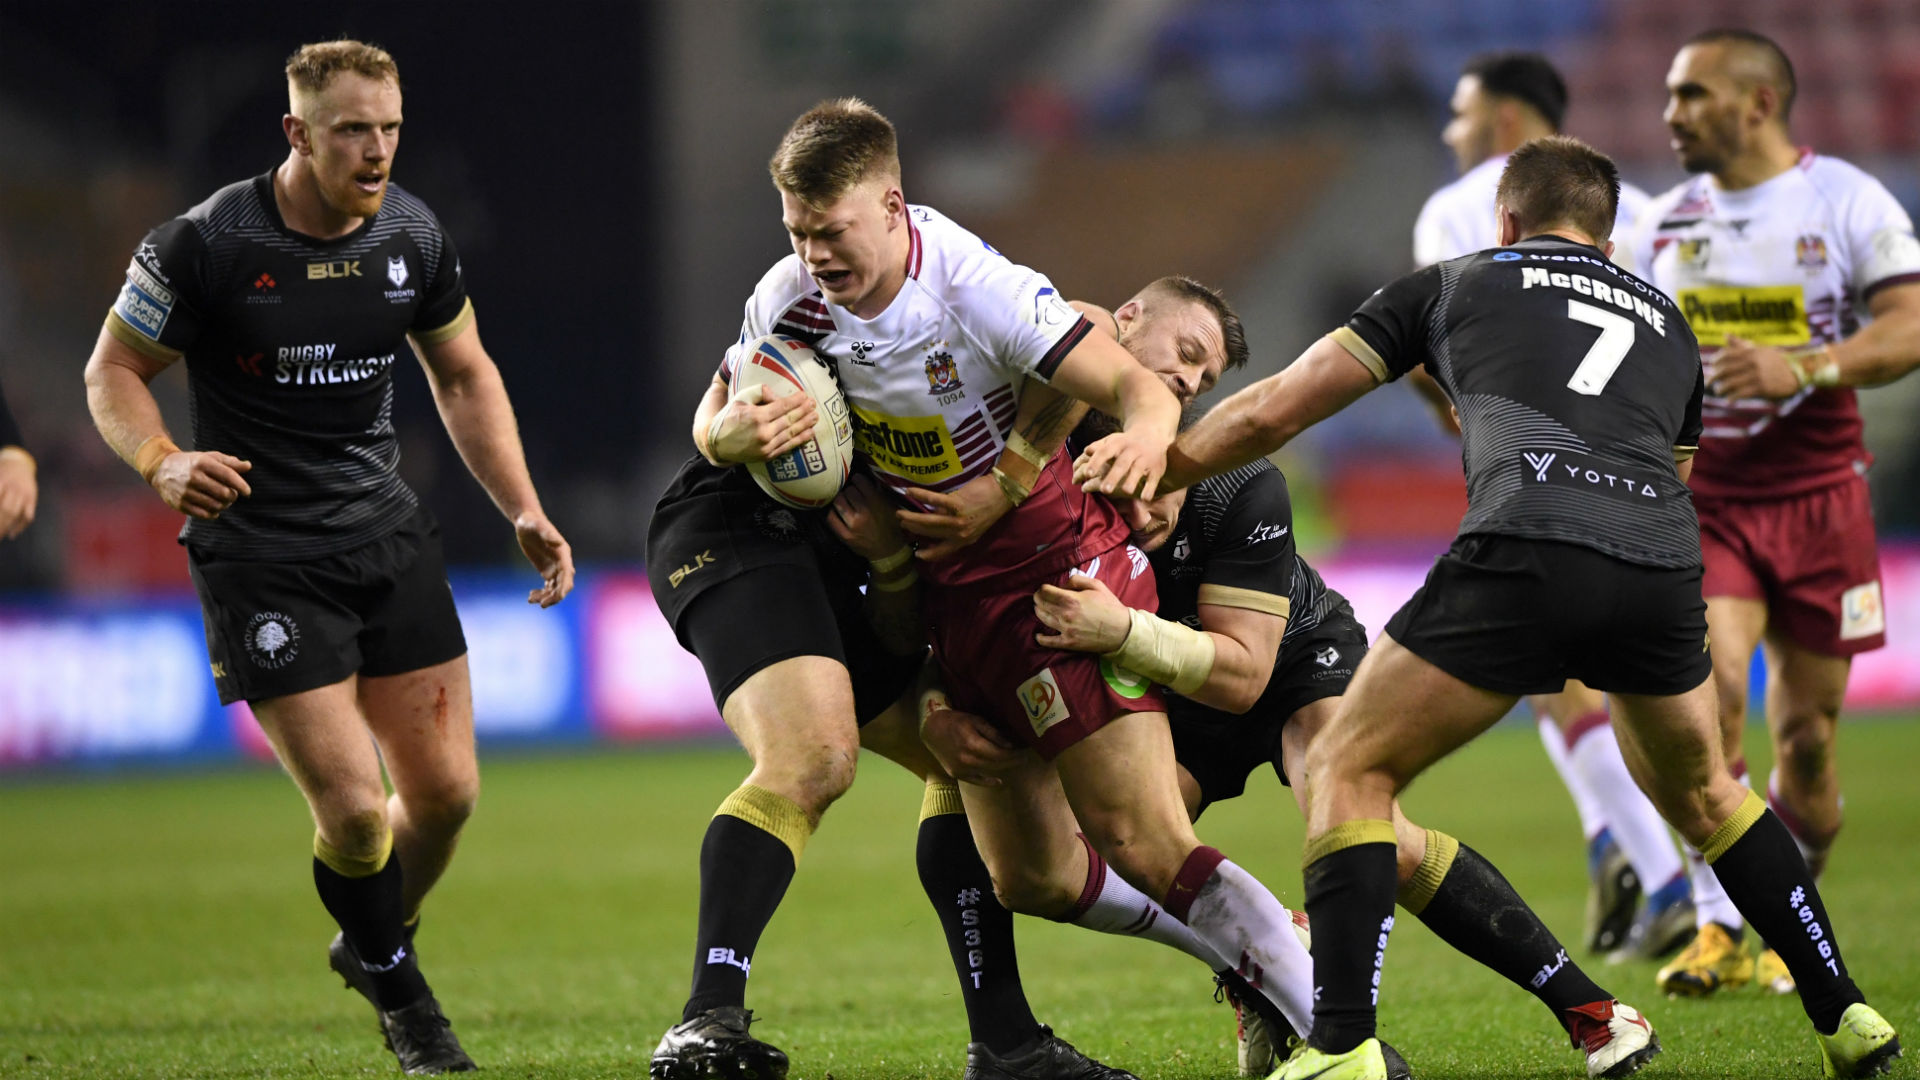 Wigan Warriors ultimately ran out comfortable winners against Toronto Wolfpack, but the Super League new boys dug in with limited numbers.